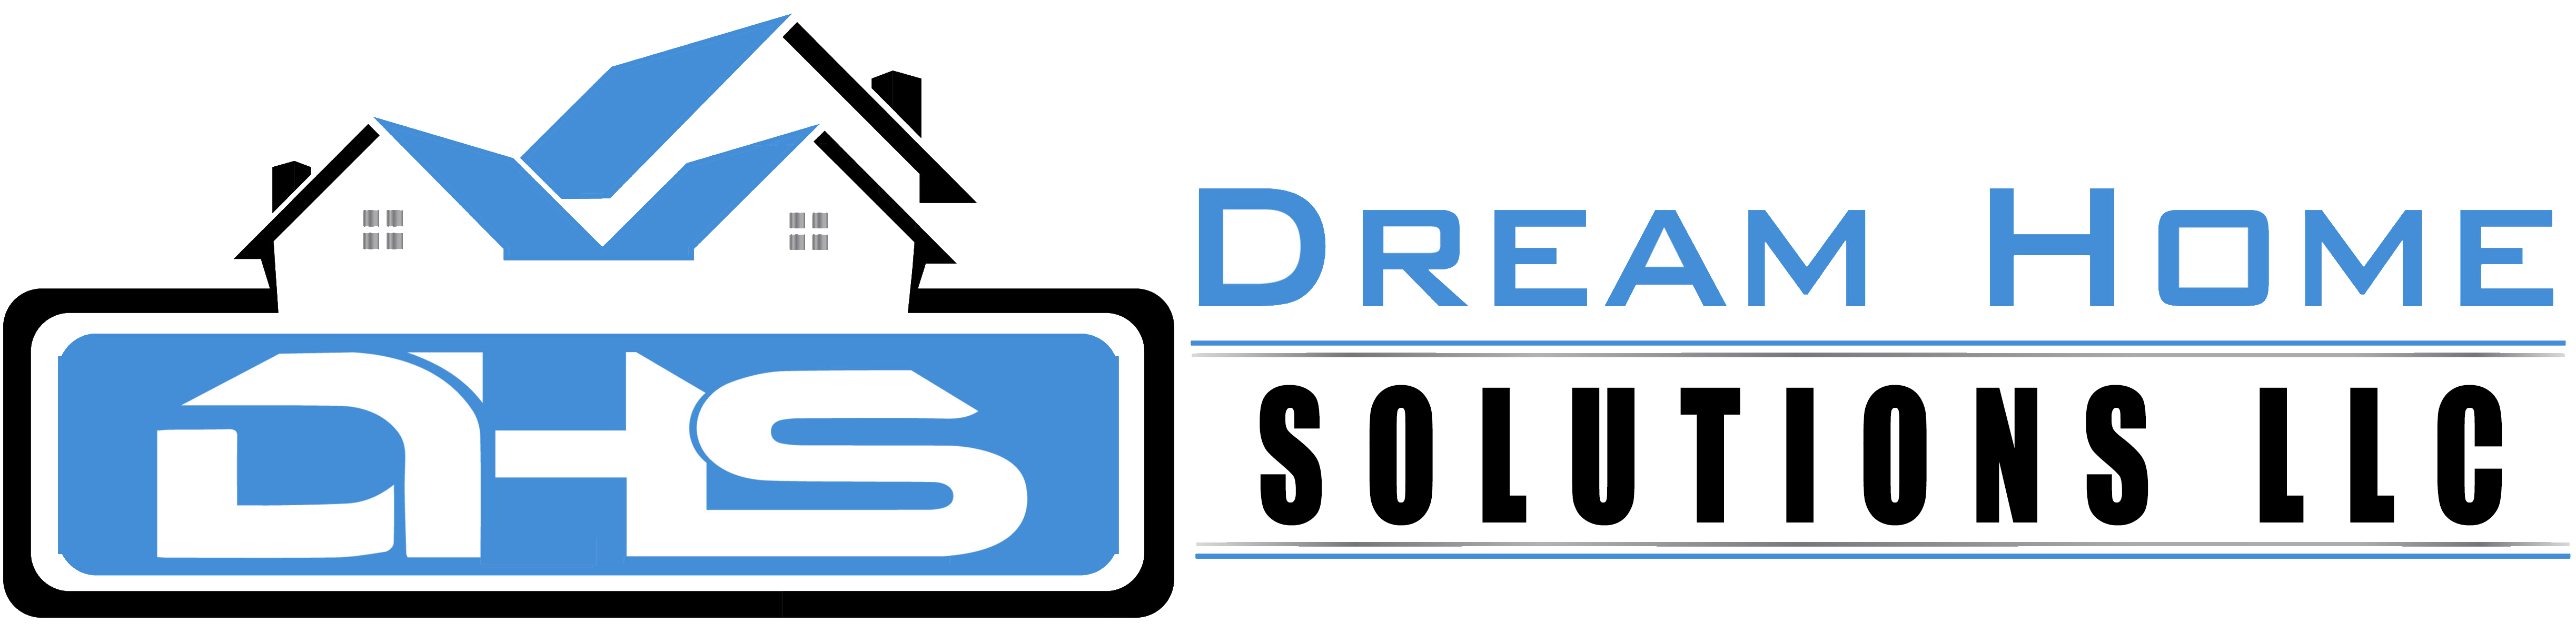 Dream Home Solutions, LLC